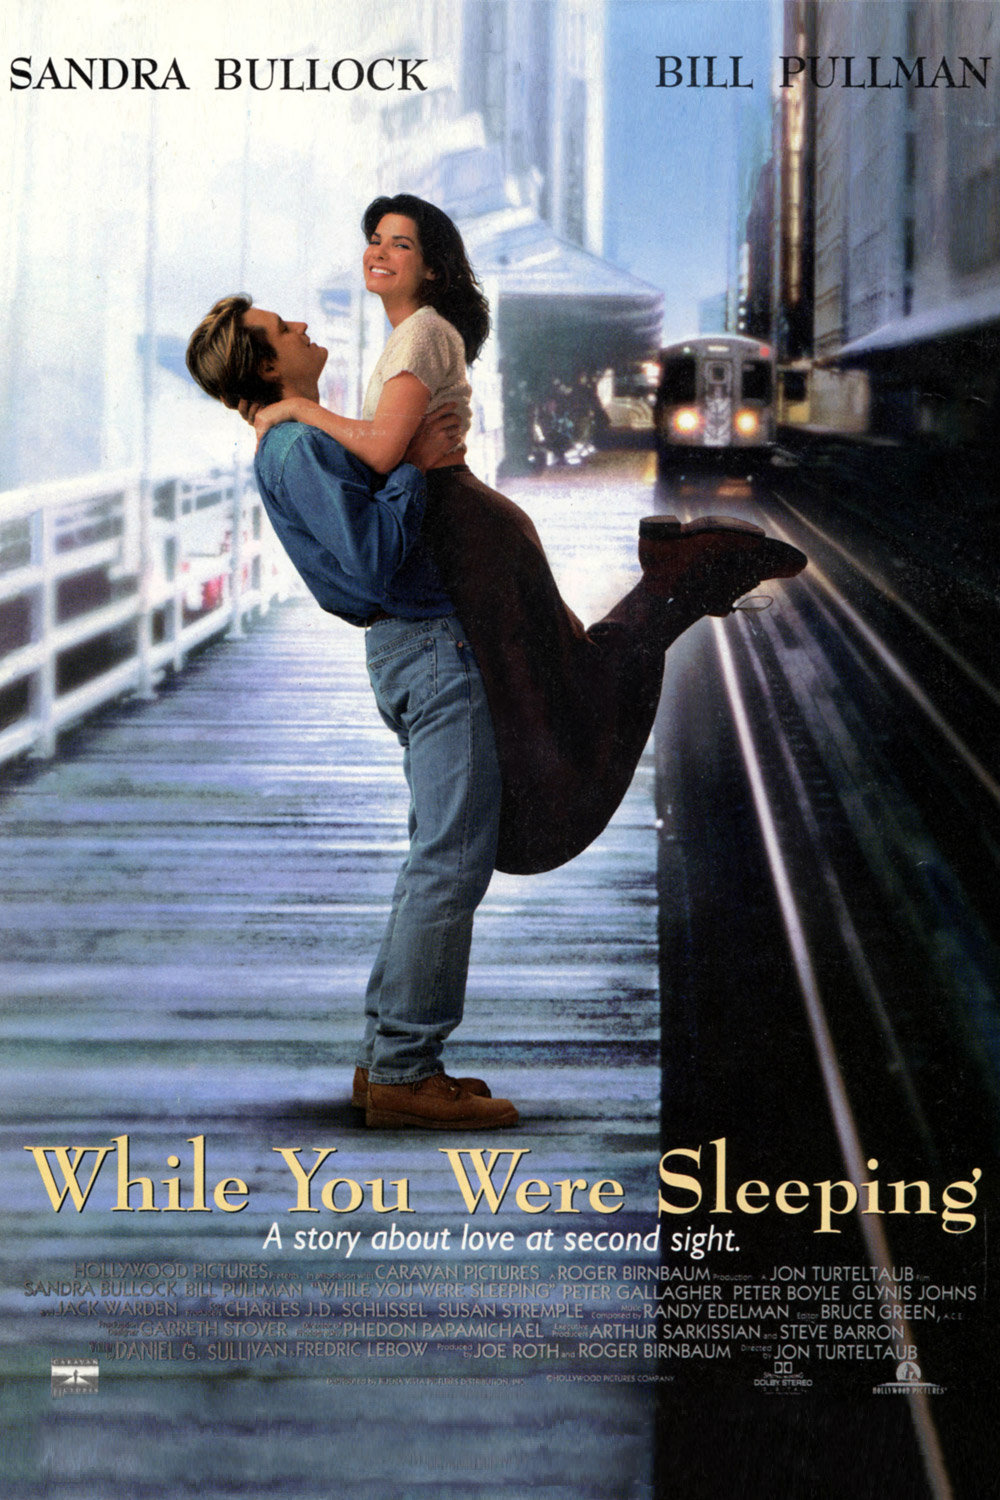 Mens du sov / While you were sleeping